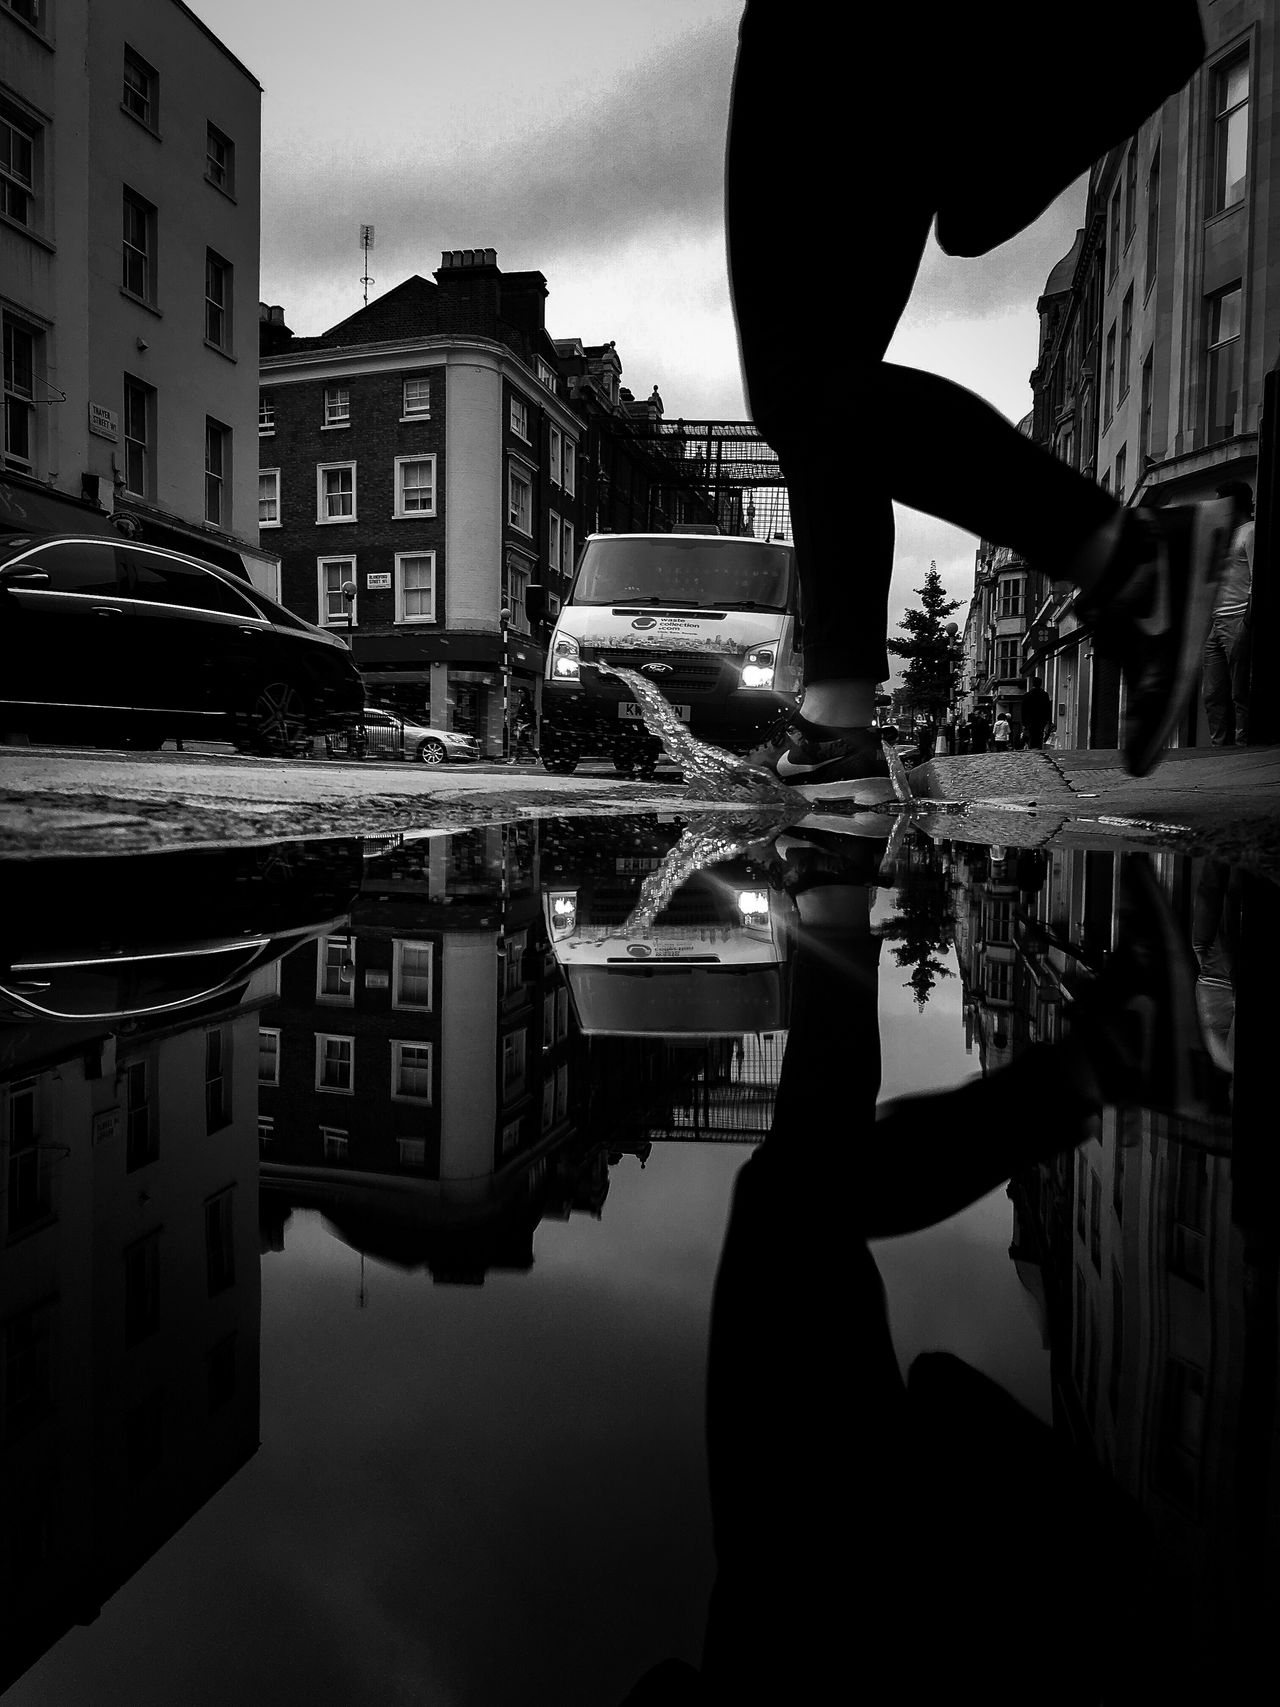 London From The Gutter Street Photography Pedestrian Splashing Puddle The Week Of Eyeem Sillouettes Fresh On Eyeem  Fine Art Photography EyeEm Best Shots EyeEm Masterclass EyeEmBestPics EyeEm Best Shots - Black + White Reflections Eyeemphotography EyeEm Best Shots - The Streets Urban EyeEm Best Shots - Architecture Darkness Atmospheric Lamposts Architecture Fine Art Urban Exploration Eyem Best Shots